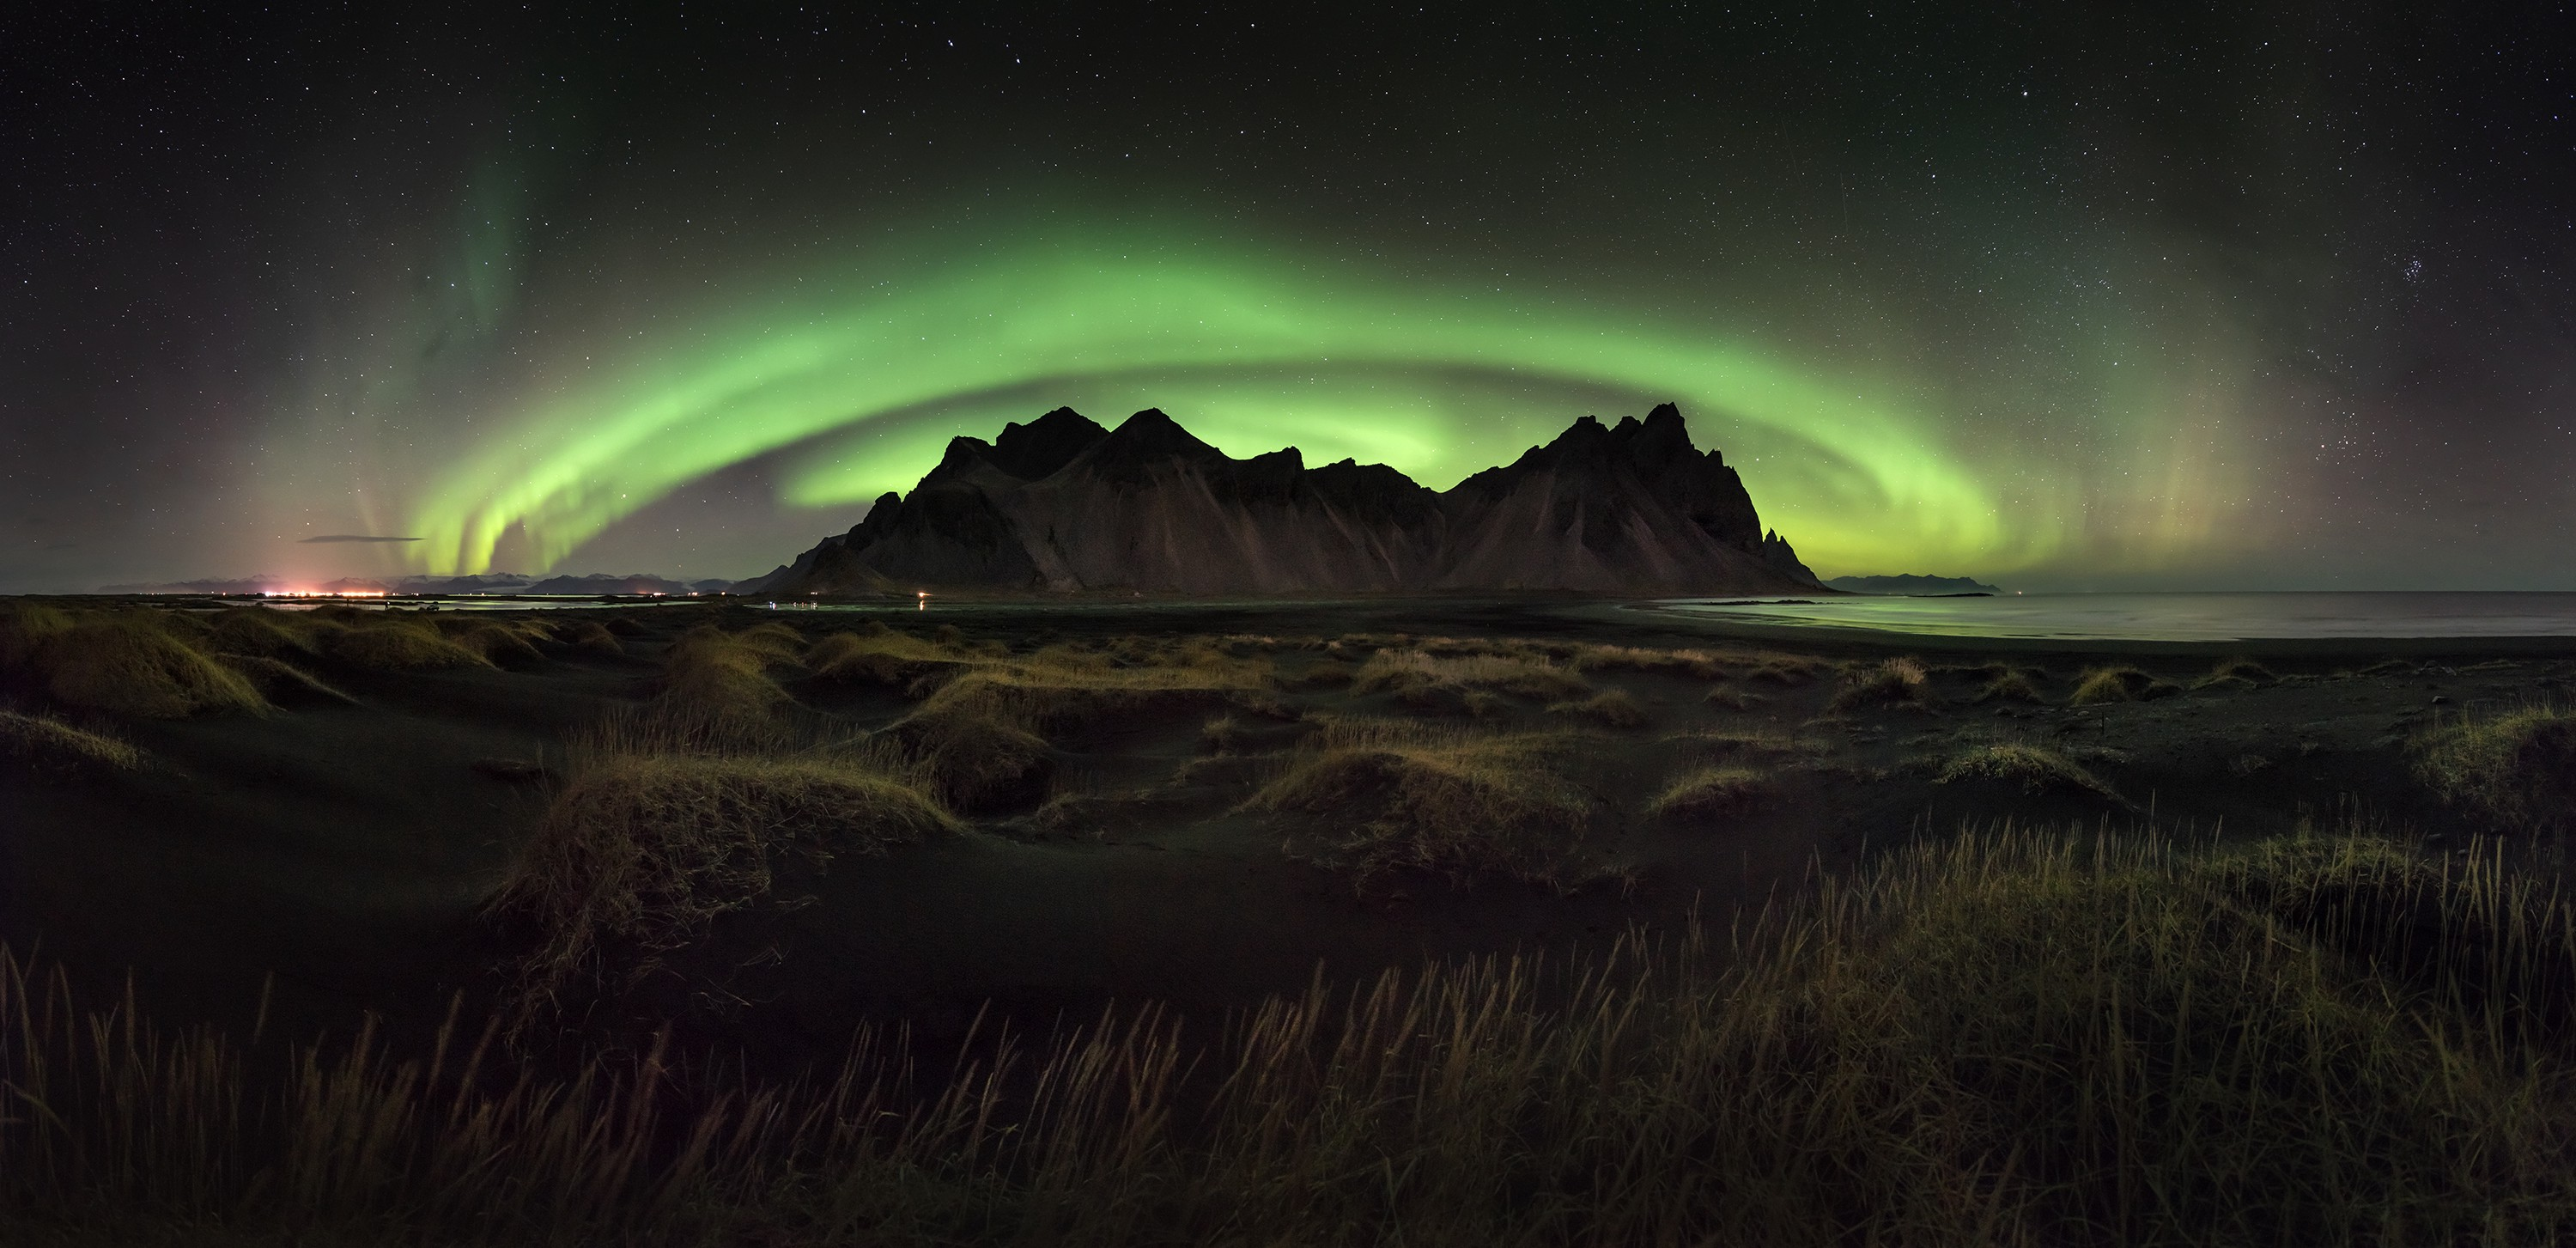 """A craggy range surrounded by a """"halo"""" of green glowing northern lights in the sky"""